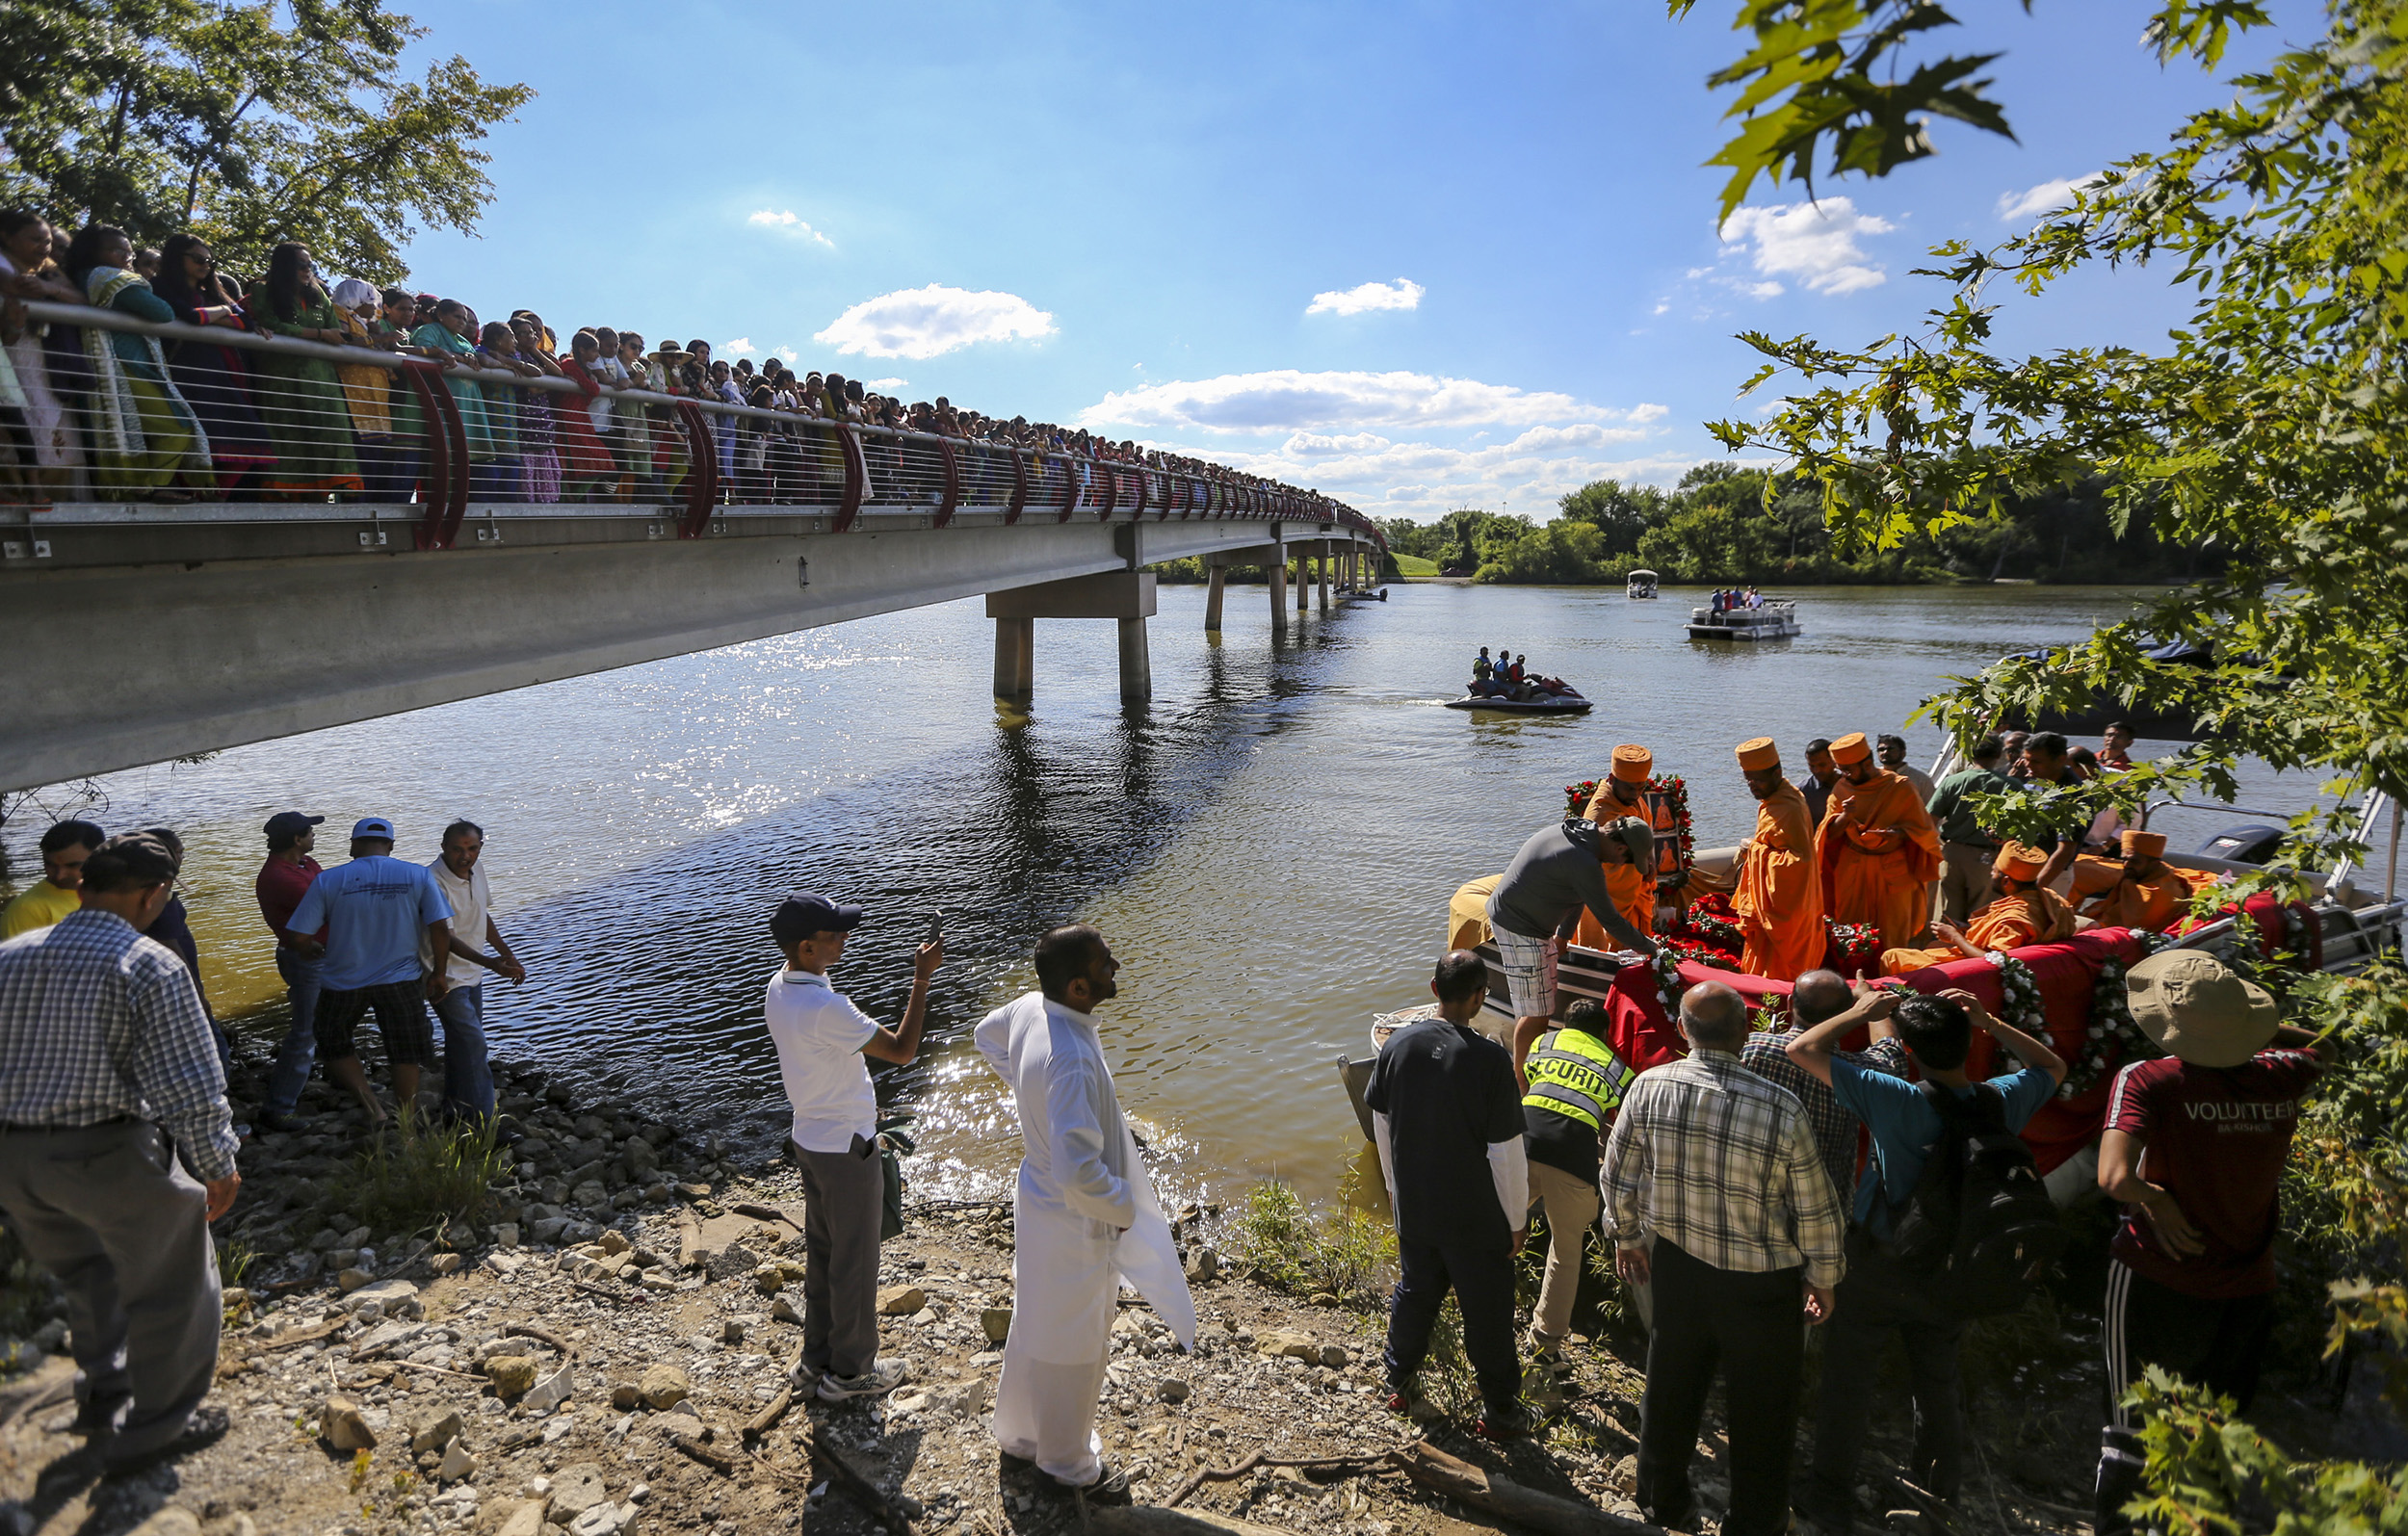 """Hundreds of Hindu followers watch as a group of swamis load onto a pontoon boat to perform a ceremony on the Mississippi River at Credit Island in Davenport, Sunday, July 30, 2017. A Hindu ceremony was held in honor of His Holiness Pramukh Swami Maharaj, who passed away about a year ago, by his followers from the region. Maharaj was the guru and """"pramukh"""" or president of the Bochasanwasi Shri Akshar Purushottam Swaminarayan (BAPS,) an international socio-spiritual Hindu organization."""